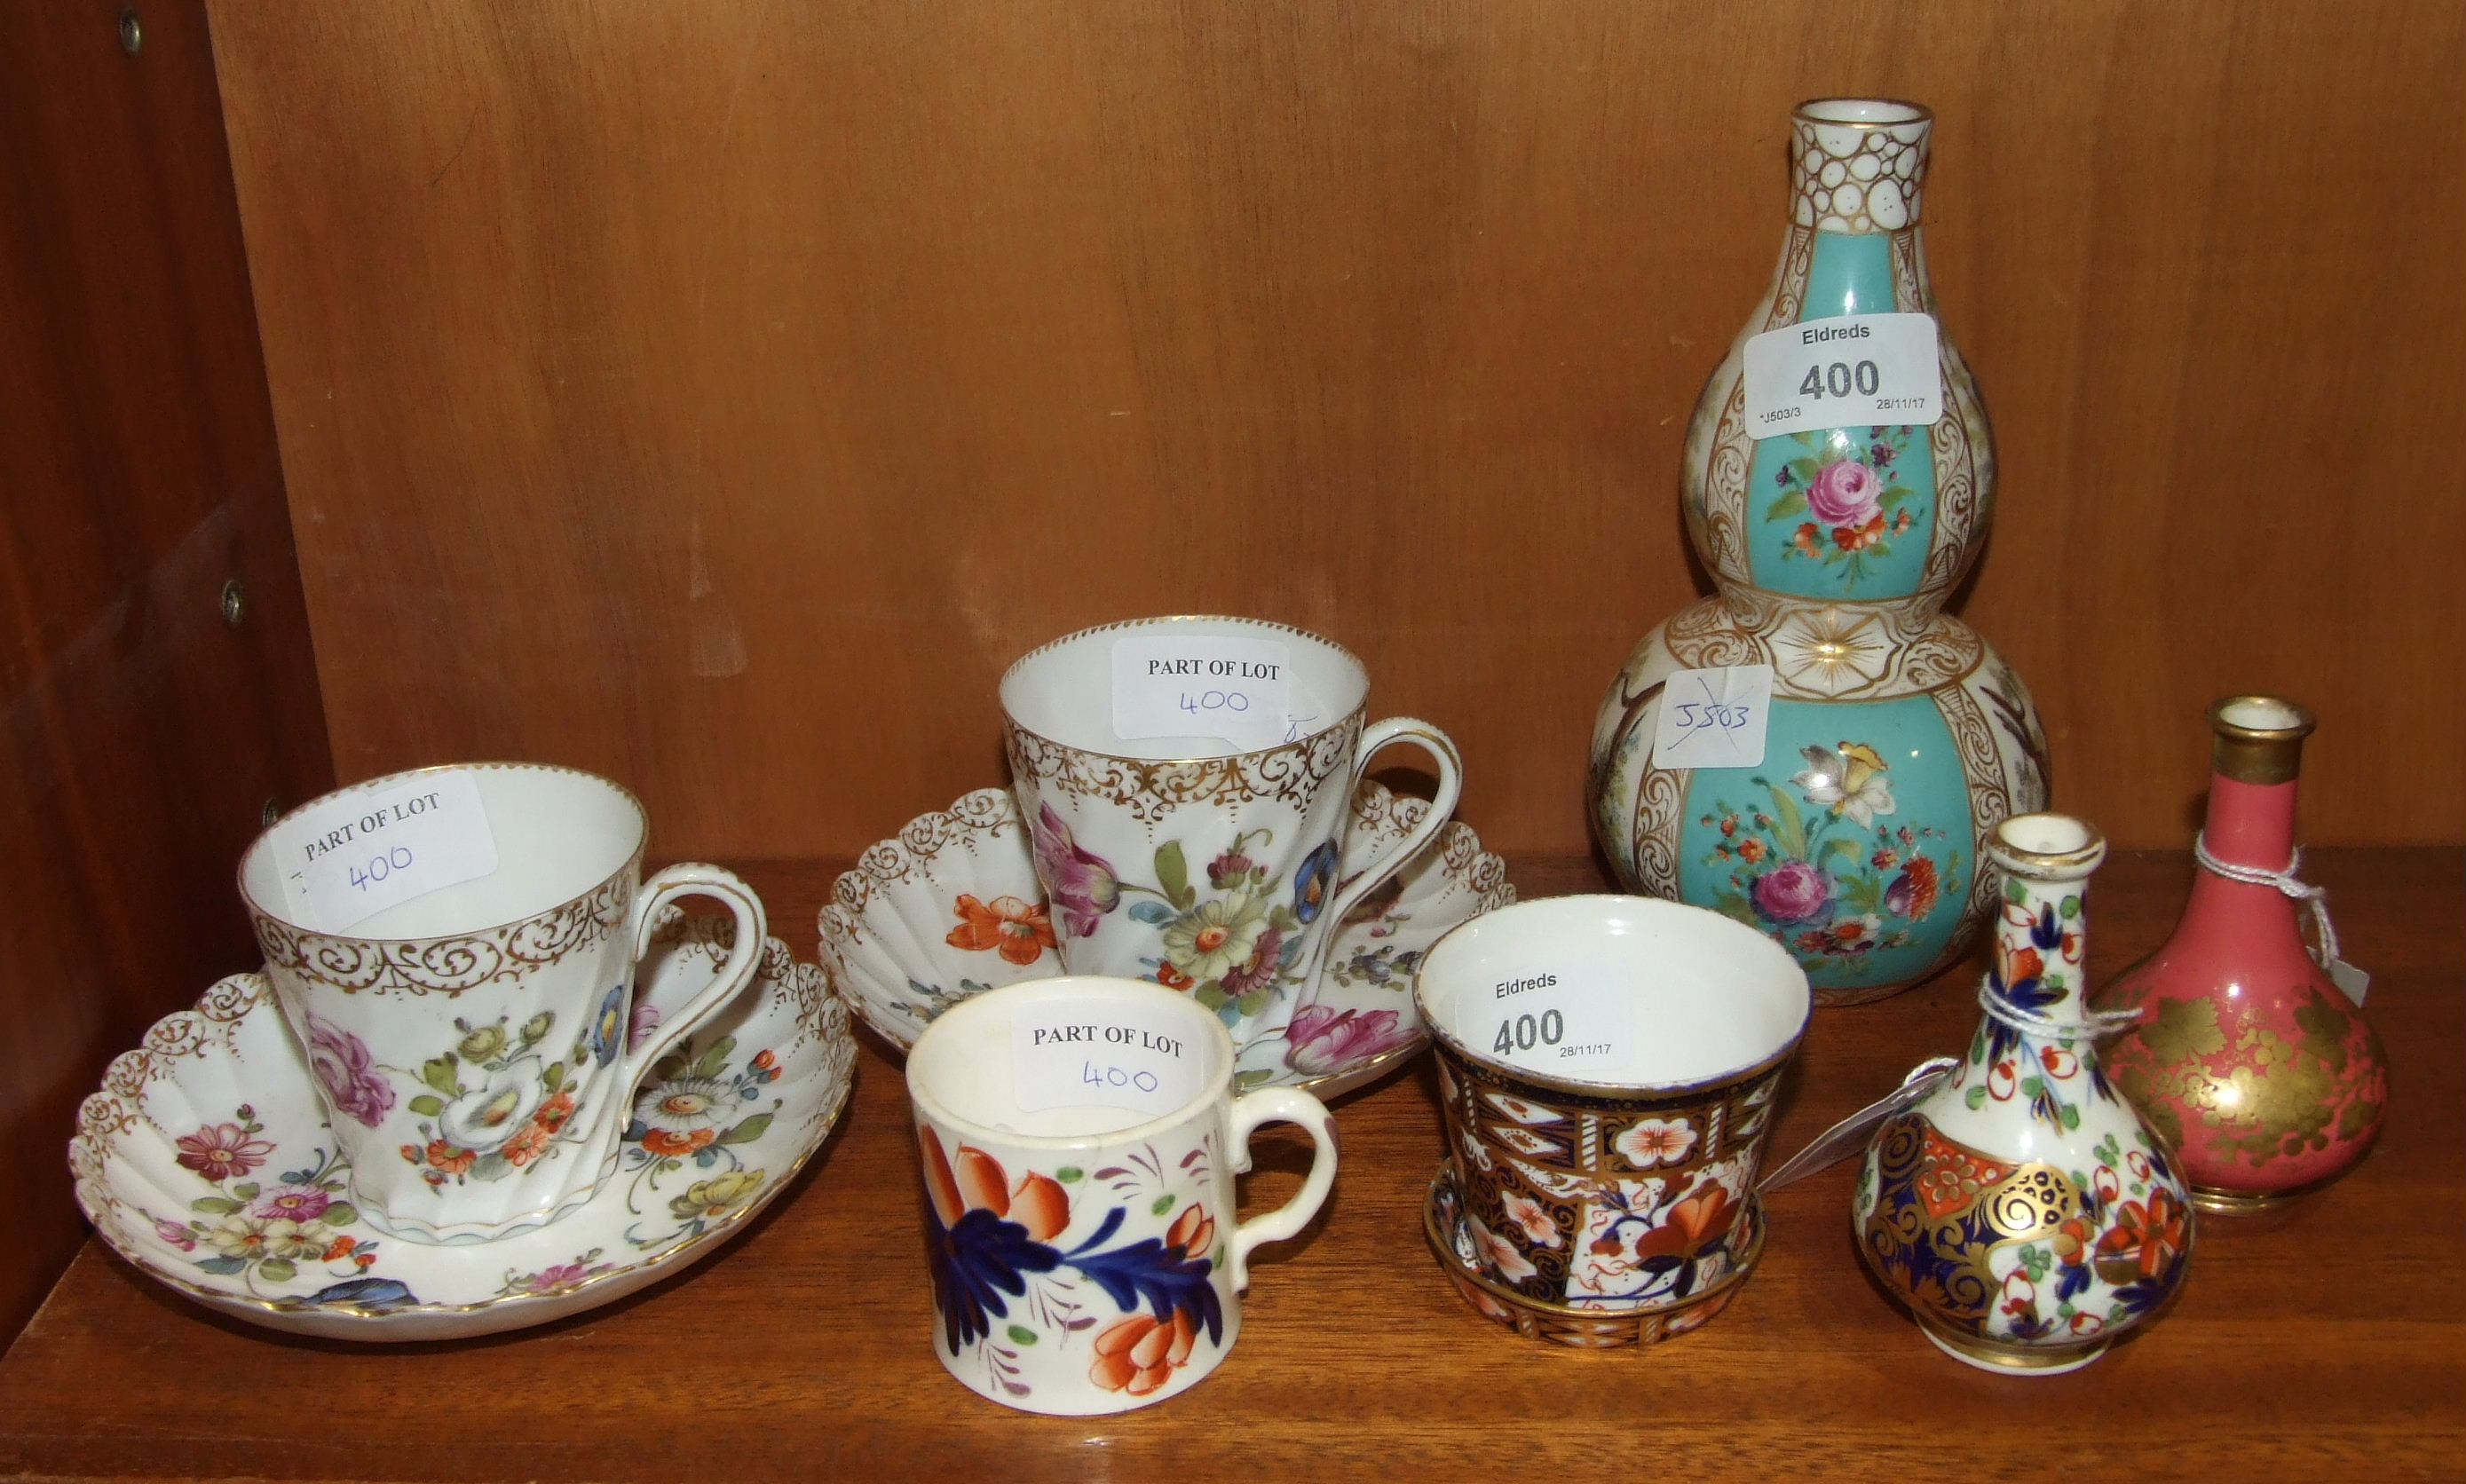 Lot 400 - A Dresden porcelain double-gourd-shaped vase, 18cm high, a pair of similar cups and saucers and four